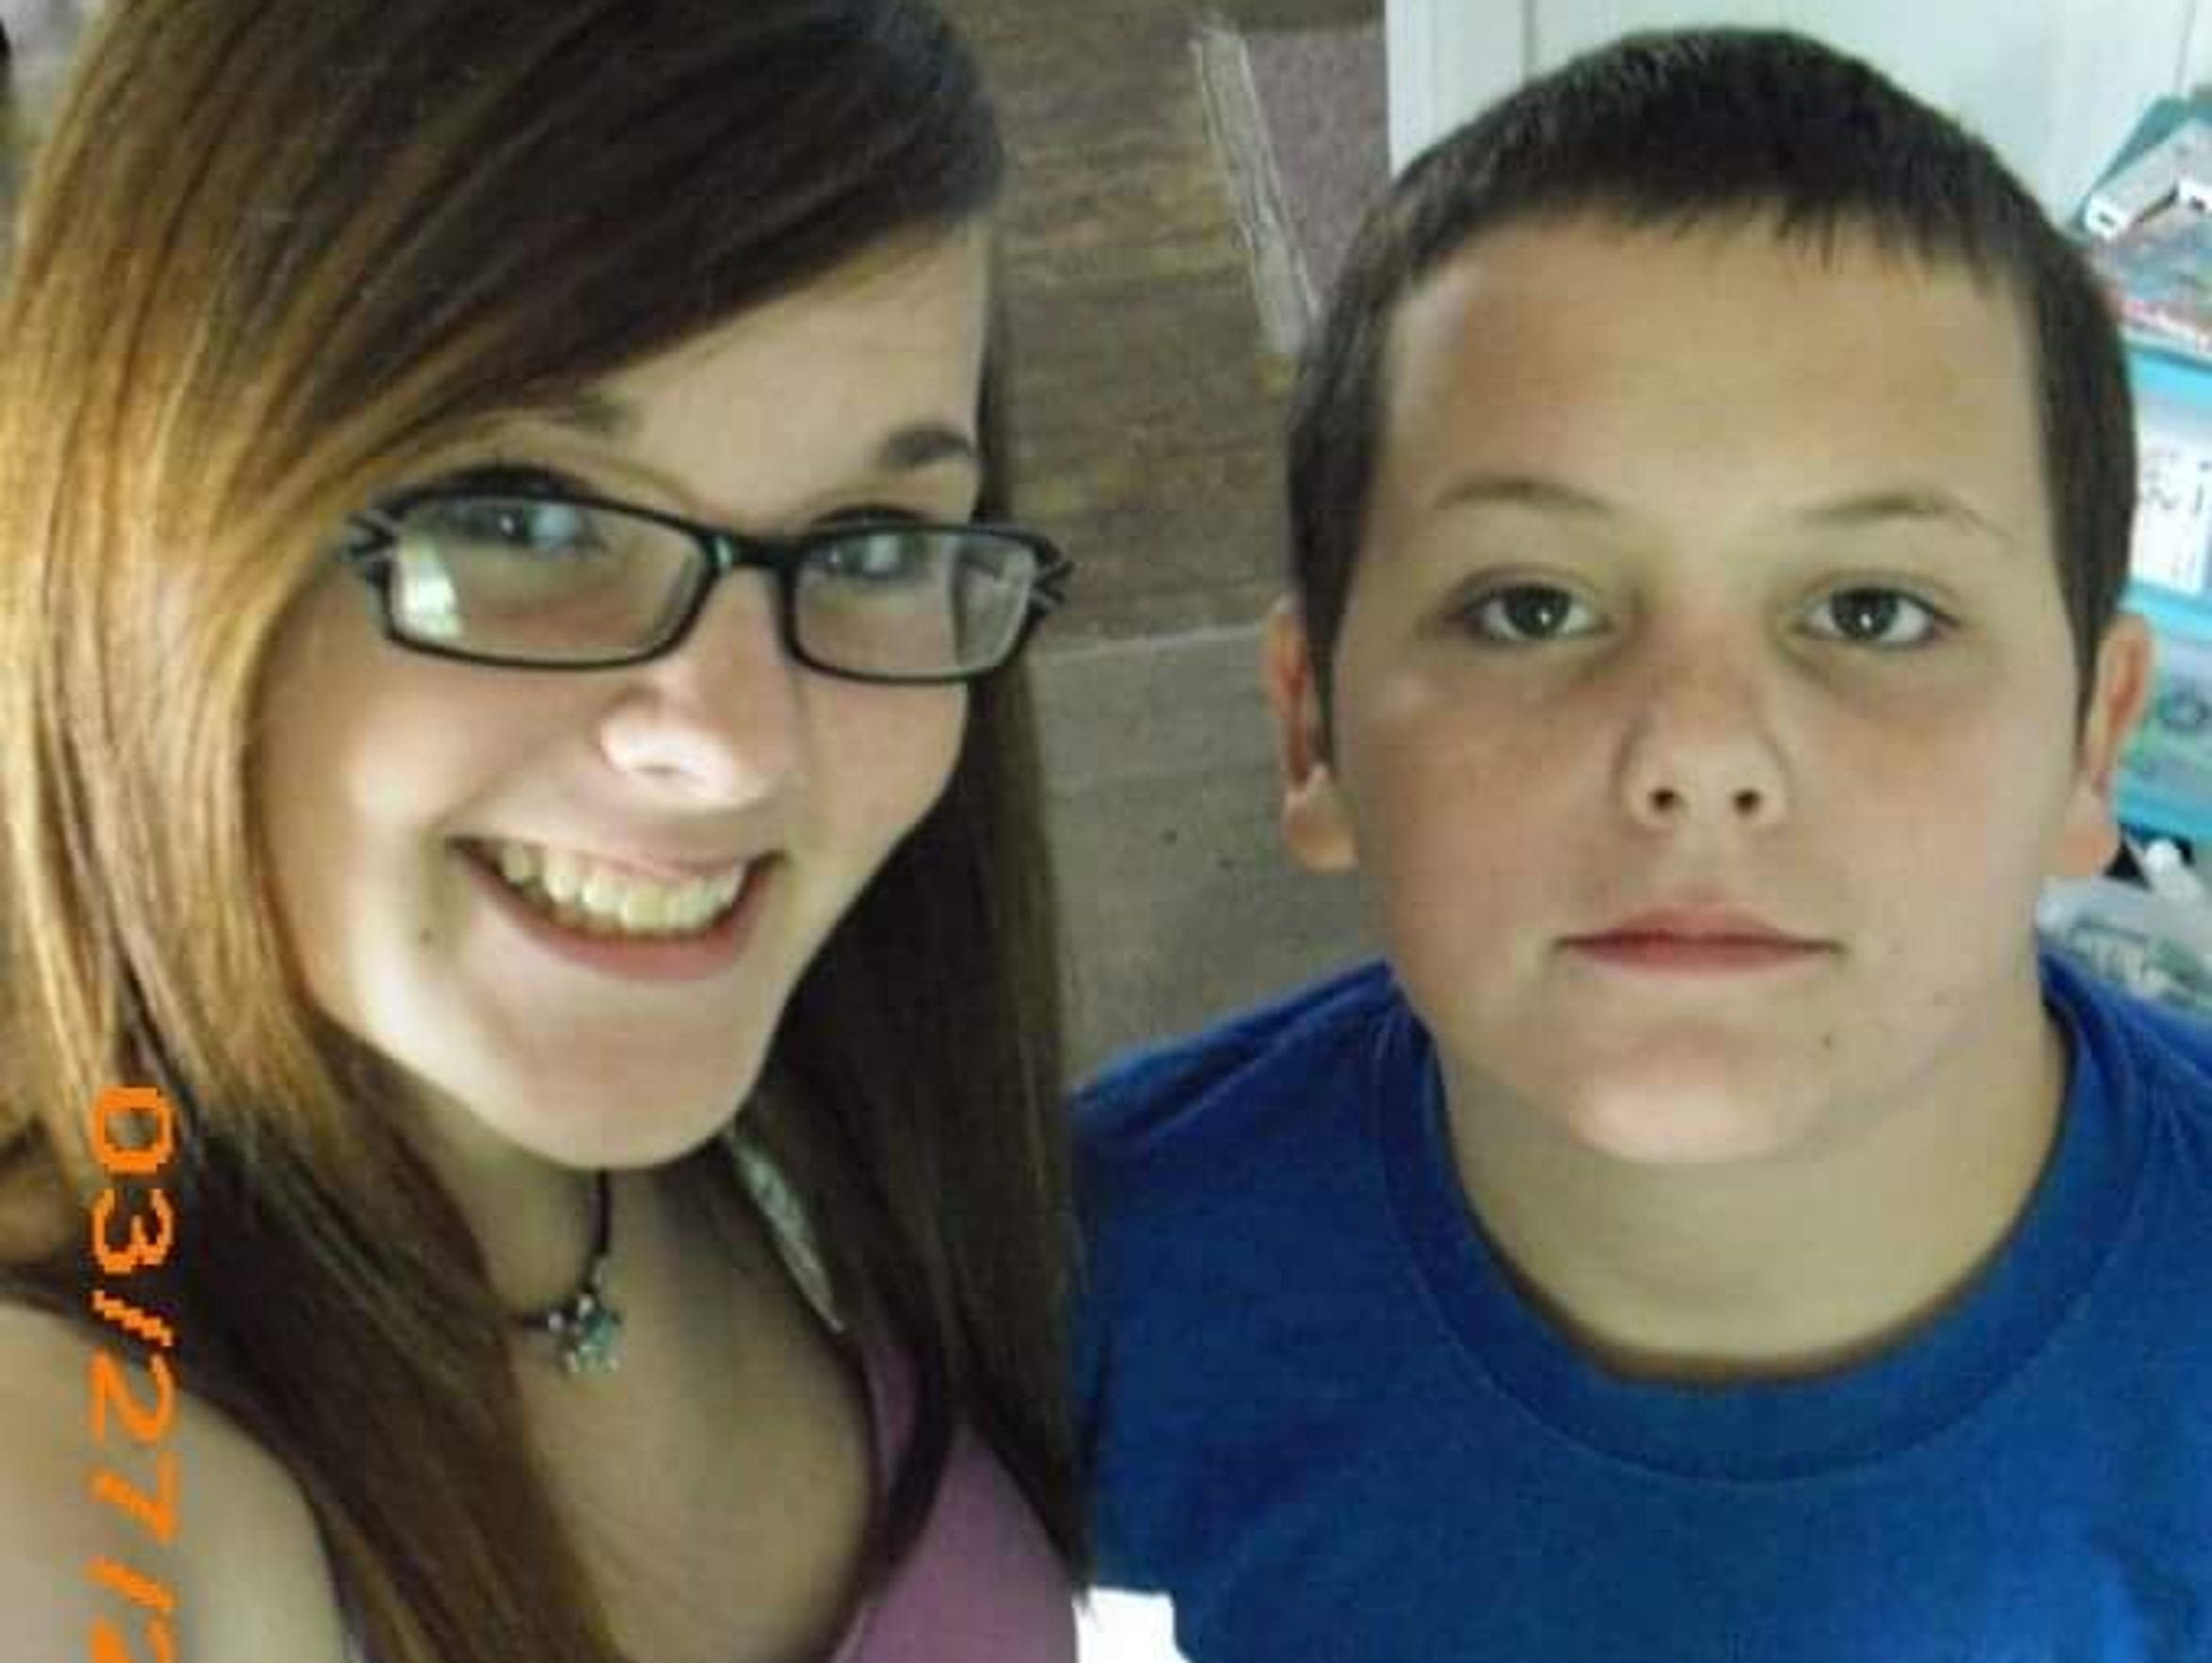 Robert with his sister, Erica, before the accident.